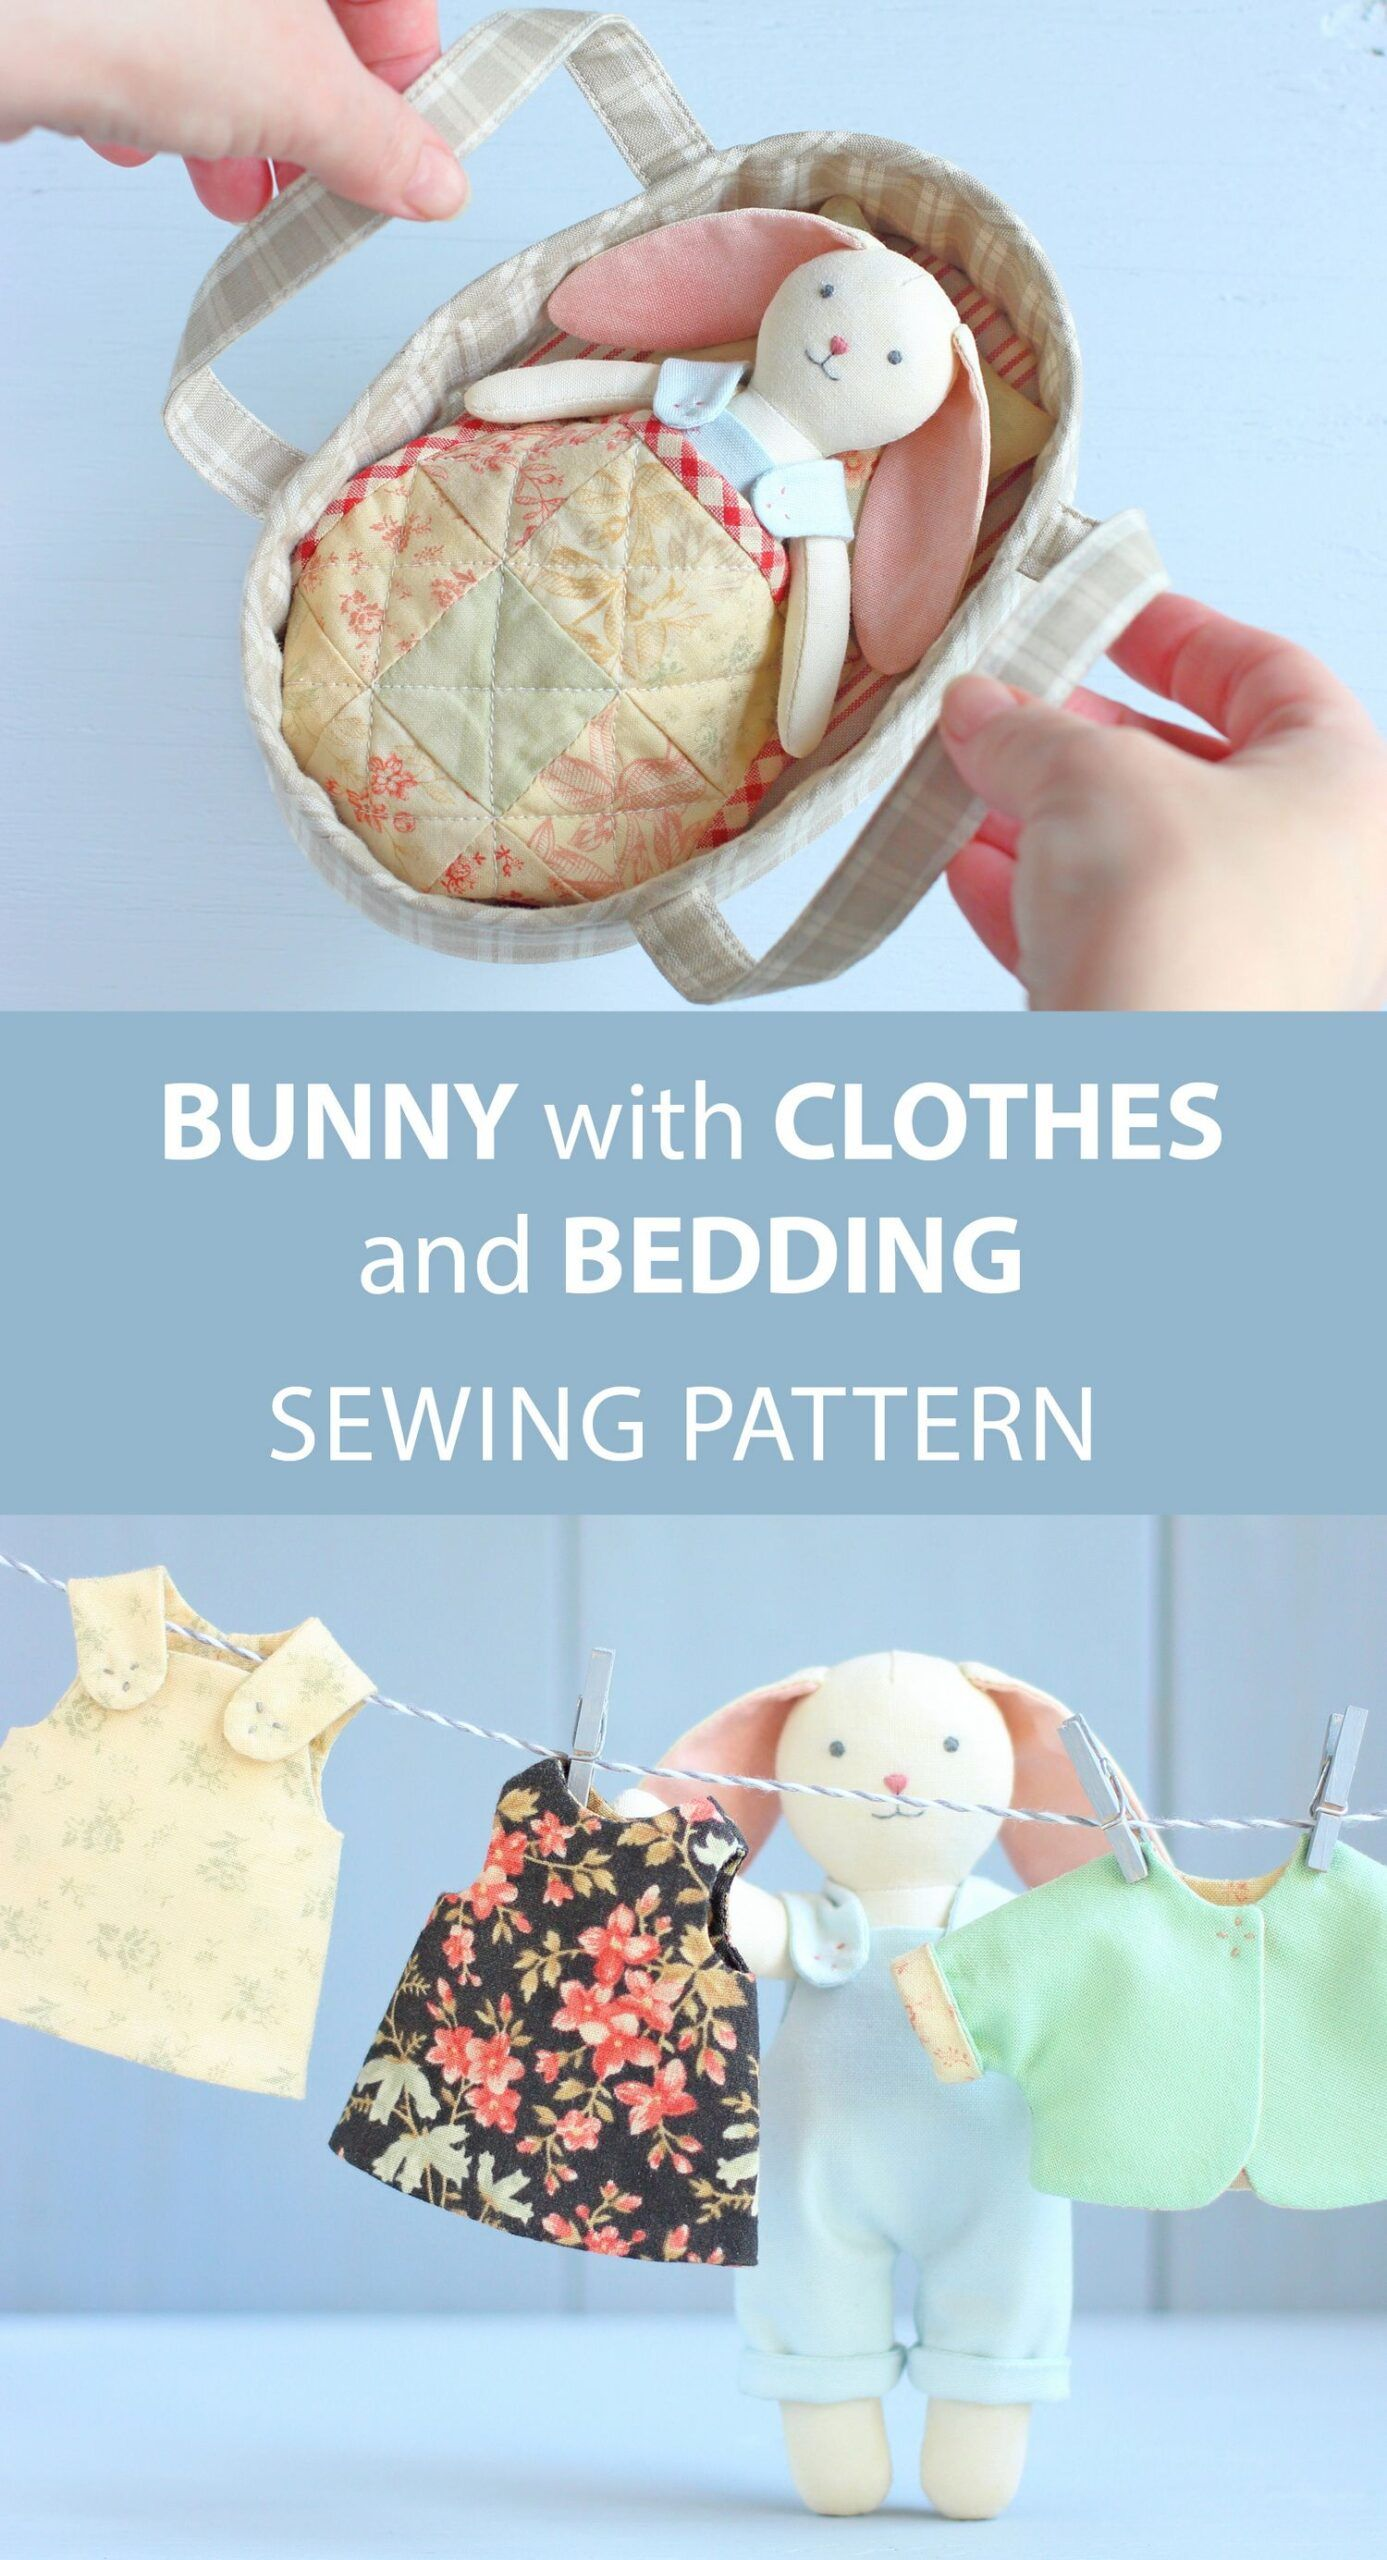 2 PDF: Mini Bunny with Set of Clothes + Basket with Bedding Sewing Pattern — DIY Animal Stuffed Doll, Soft Toy, Dress up Doll, Rabbit Doll, #Animal #Basket #Bedding #Bunny #Clothes #DIY #Doll #Dress #Mini #Pattern #PDF #Rabbit #Set #Sewing #soft #Stuffed #Toy